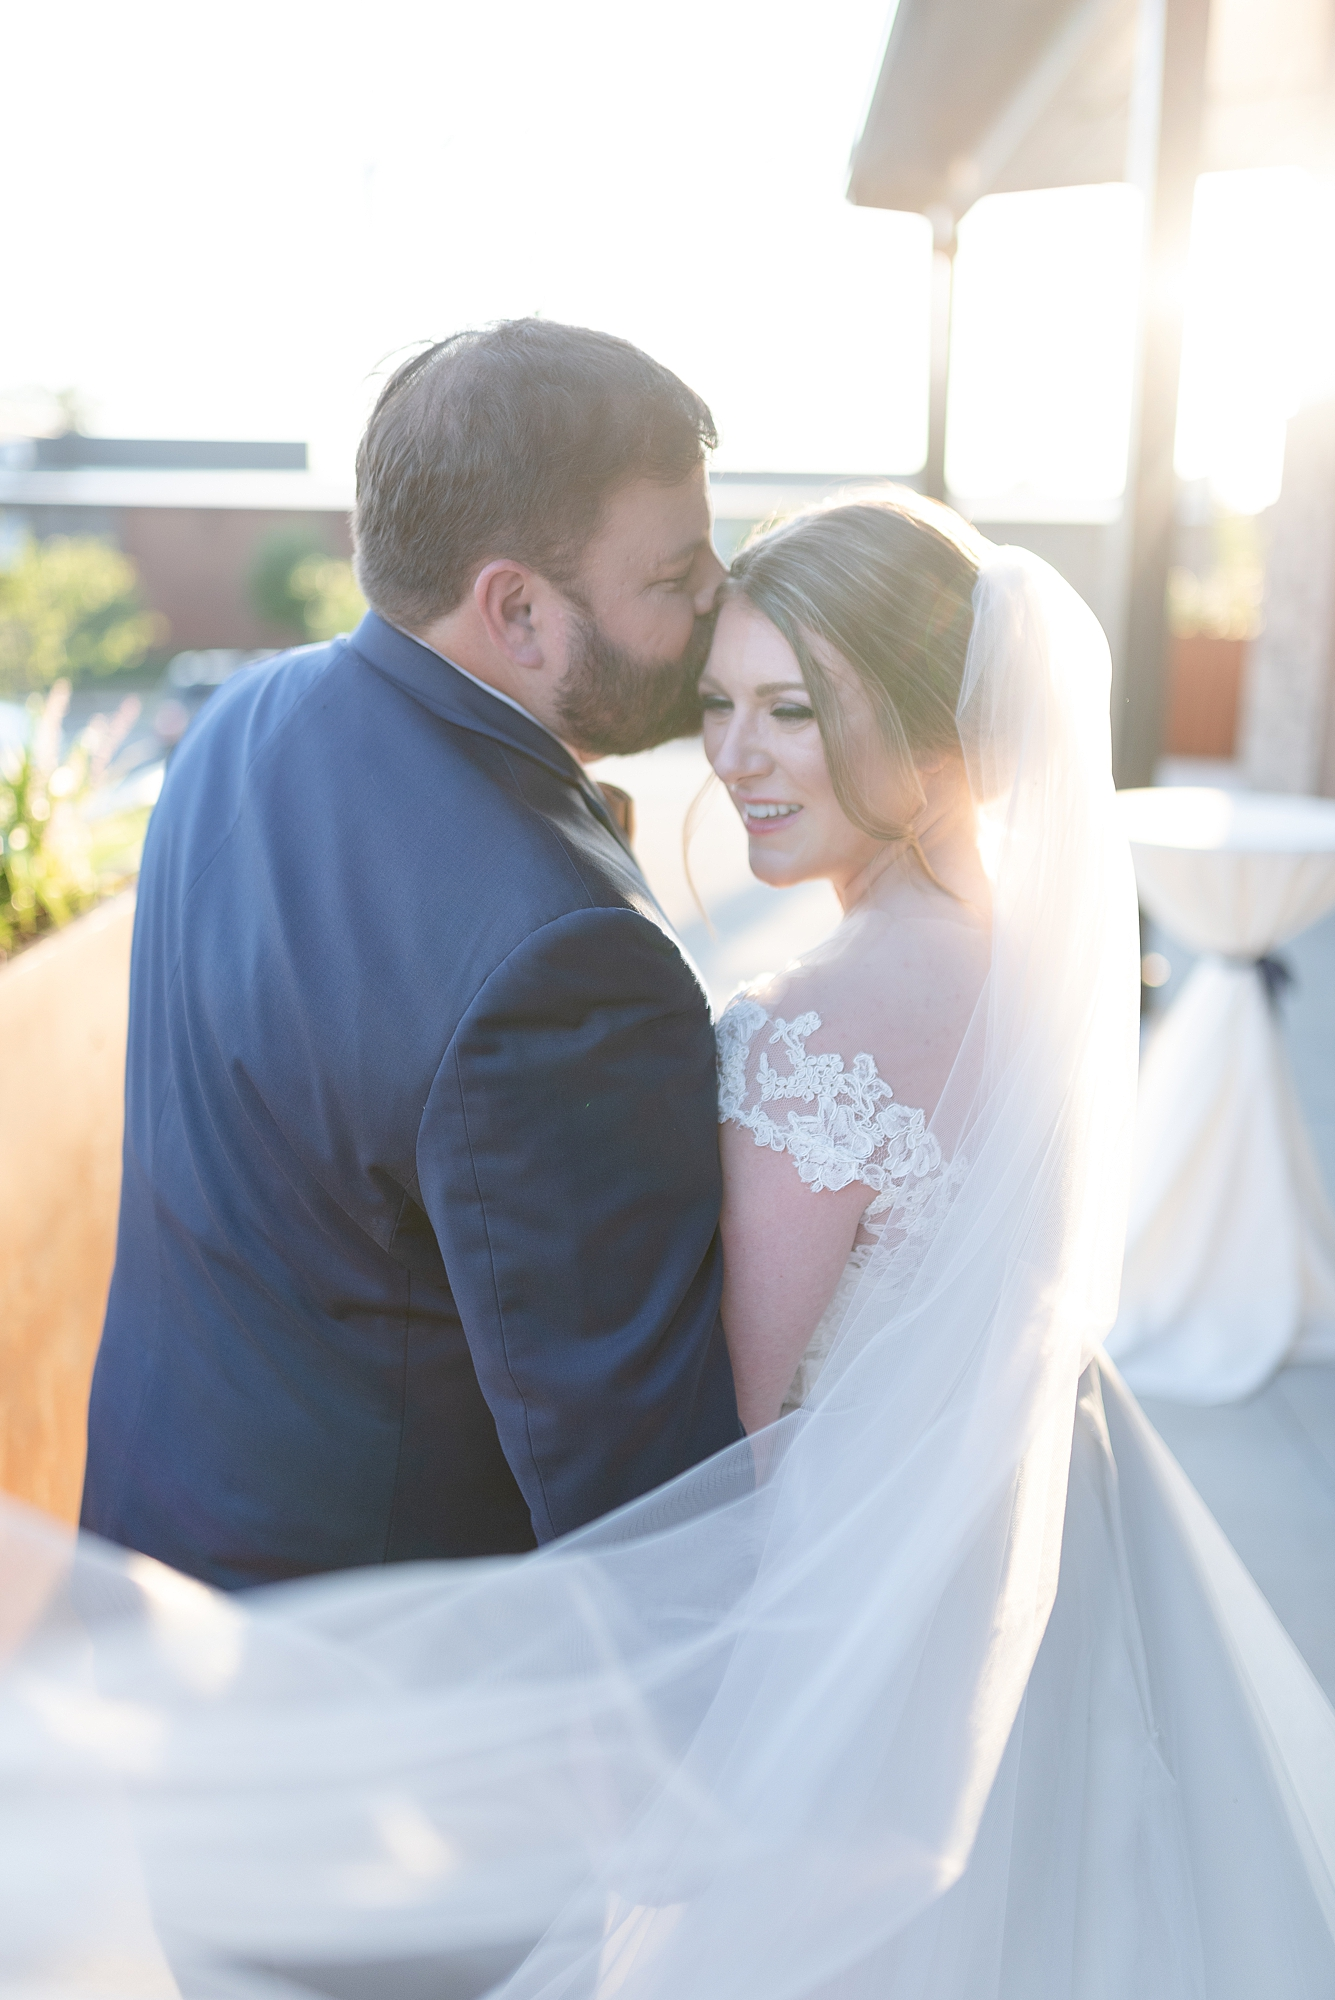 MidSummer Night's Dream Wedding Inspiration at 14TENN captured by Dolly Delong Photography